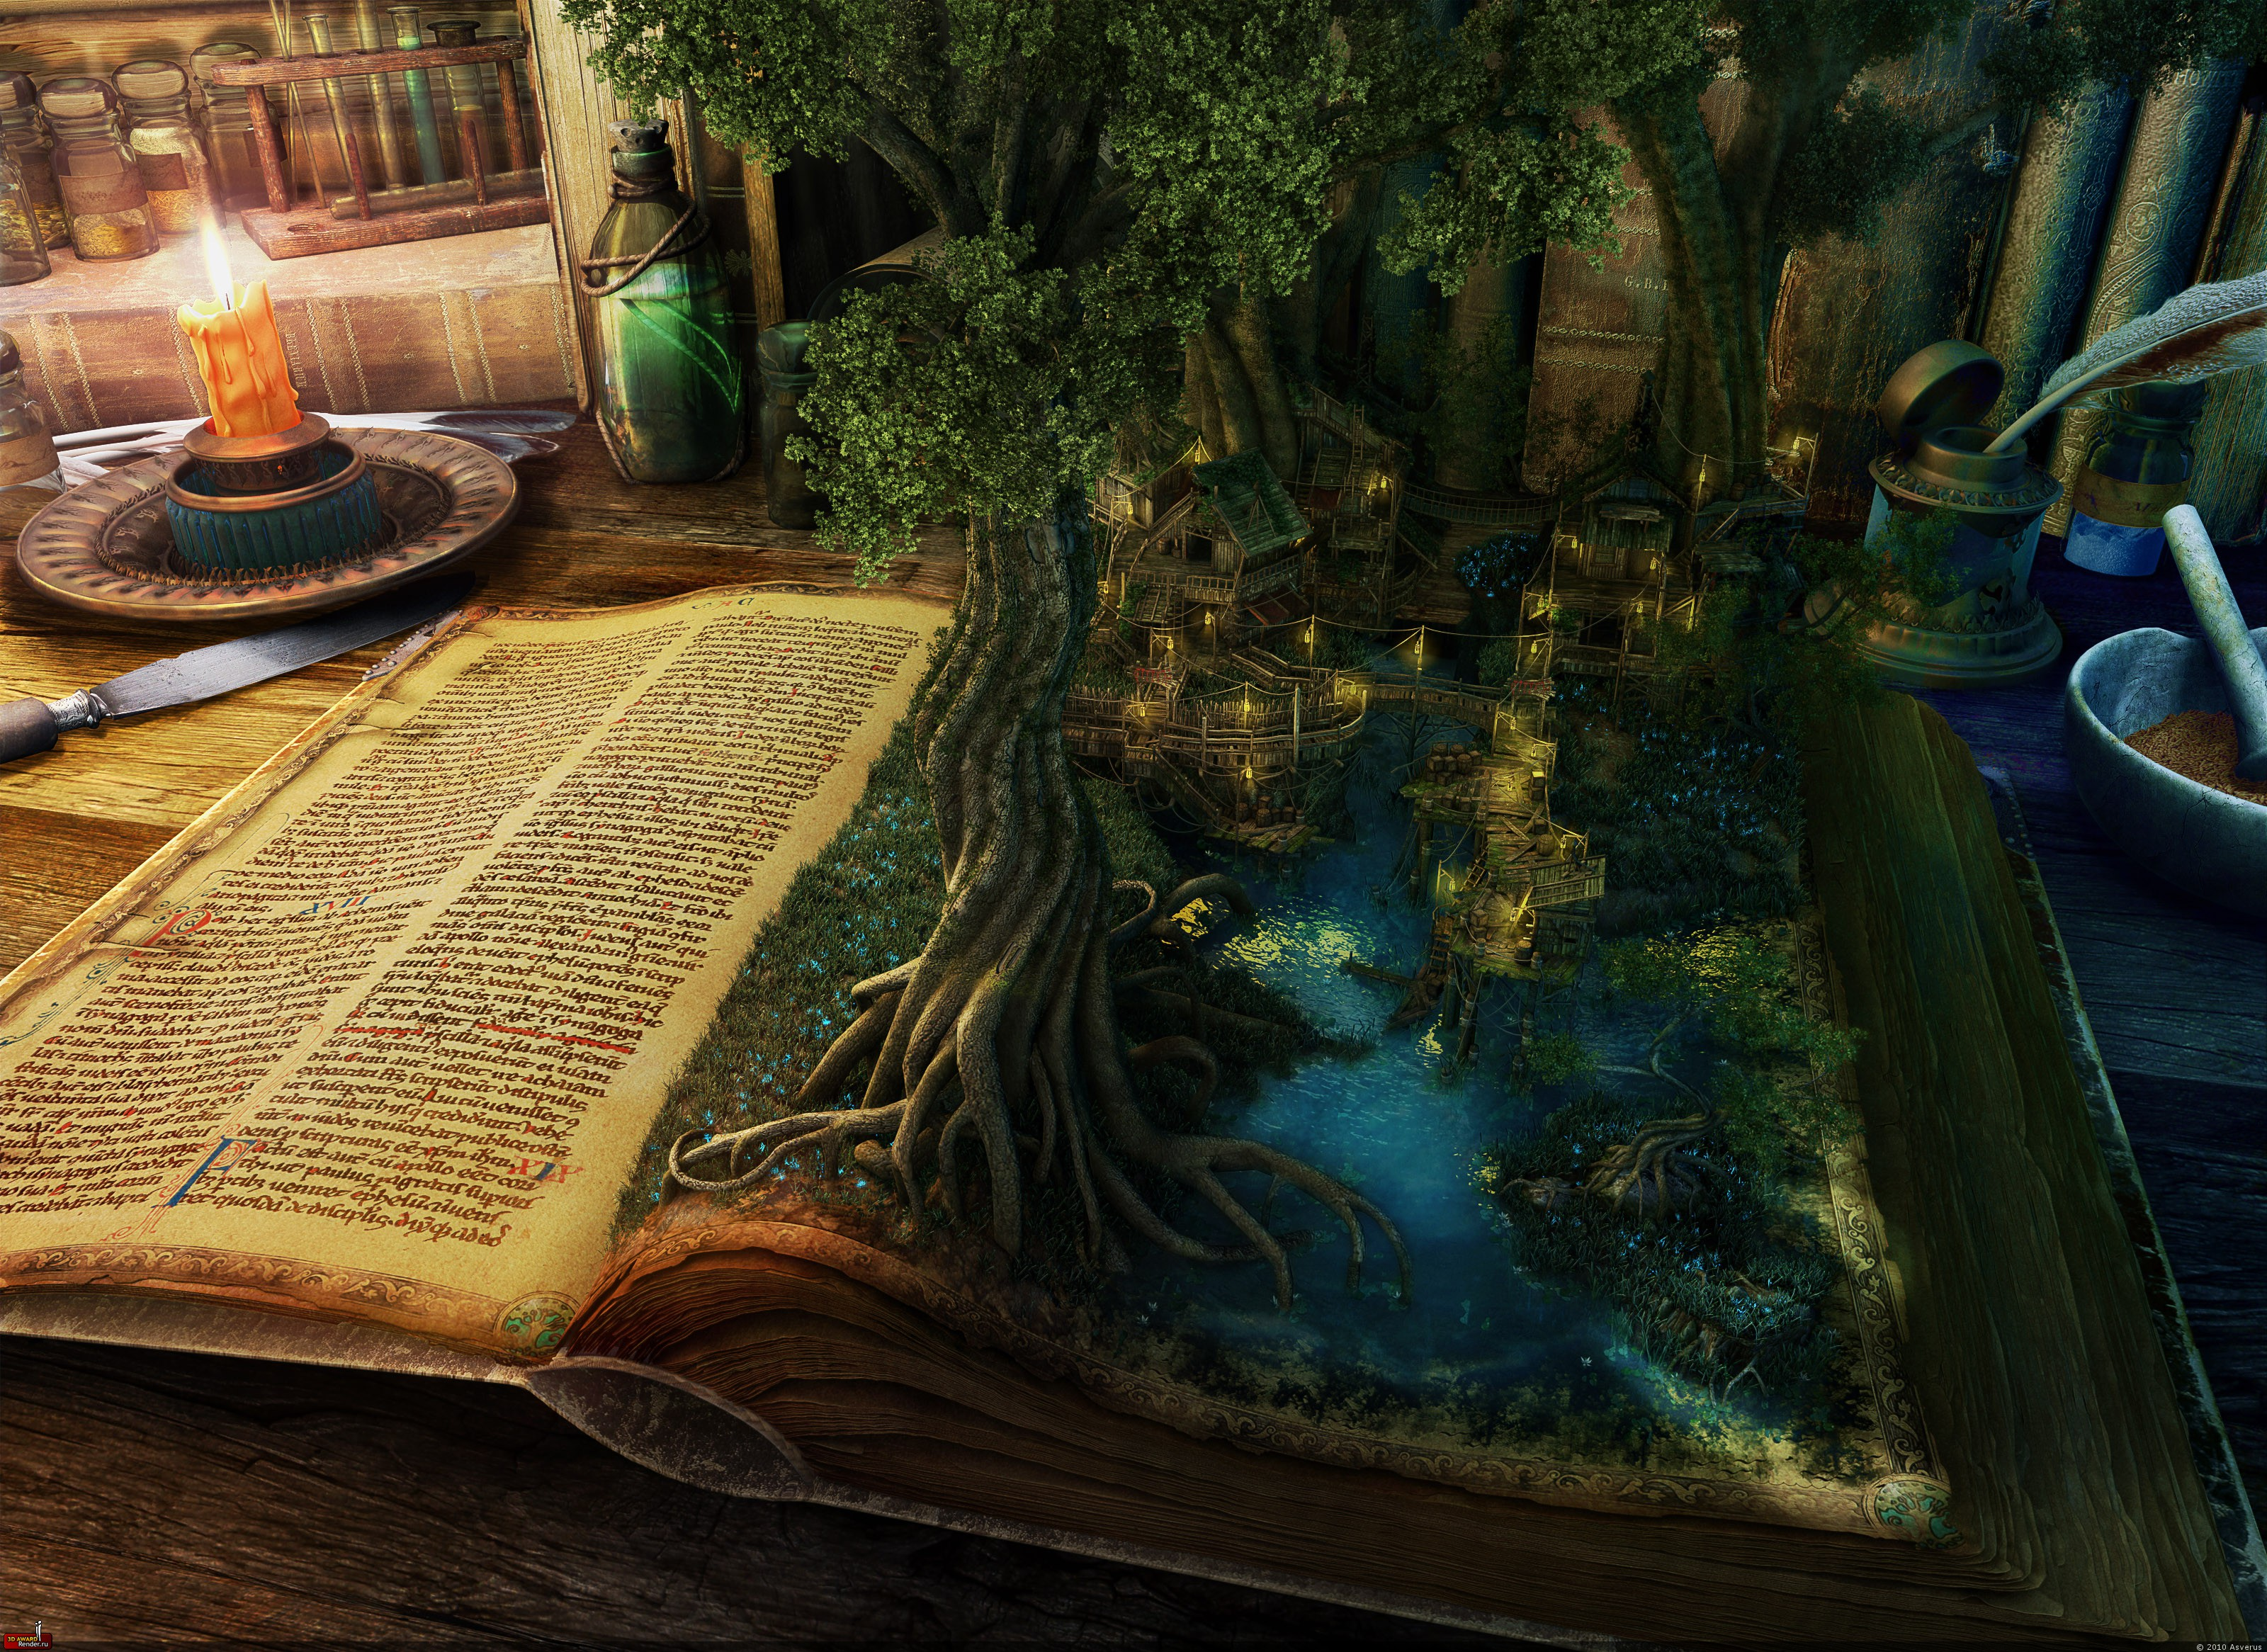 General 3200x2332 books trees digital art fantasy art artwork candles